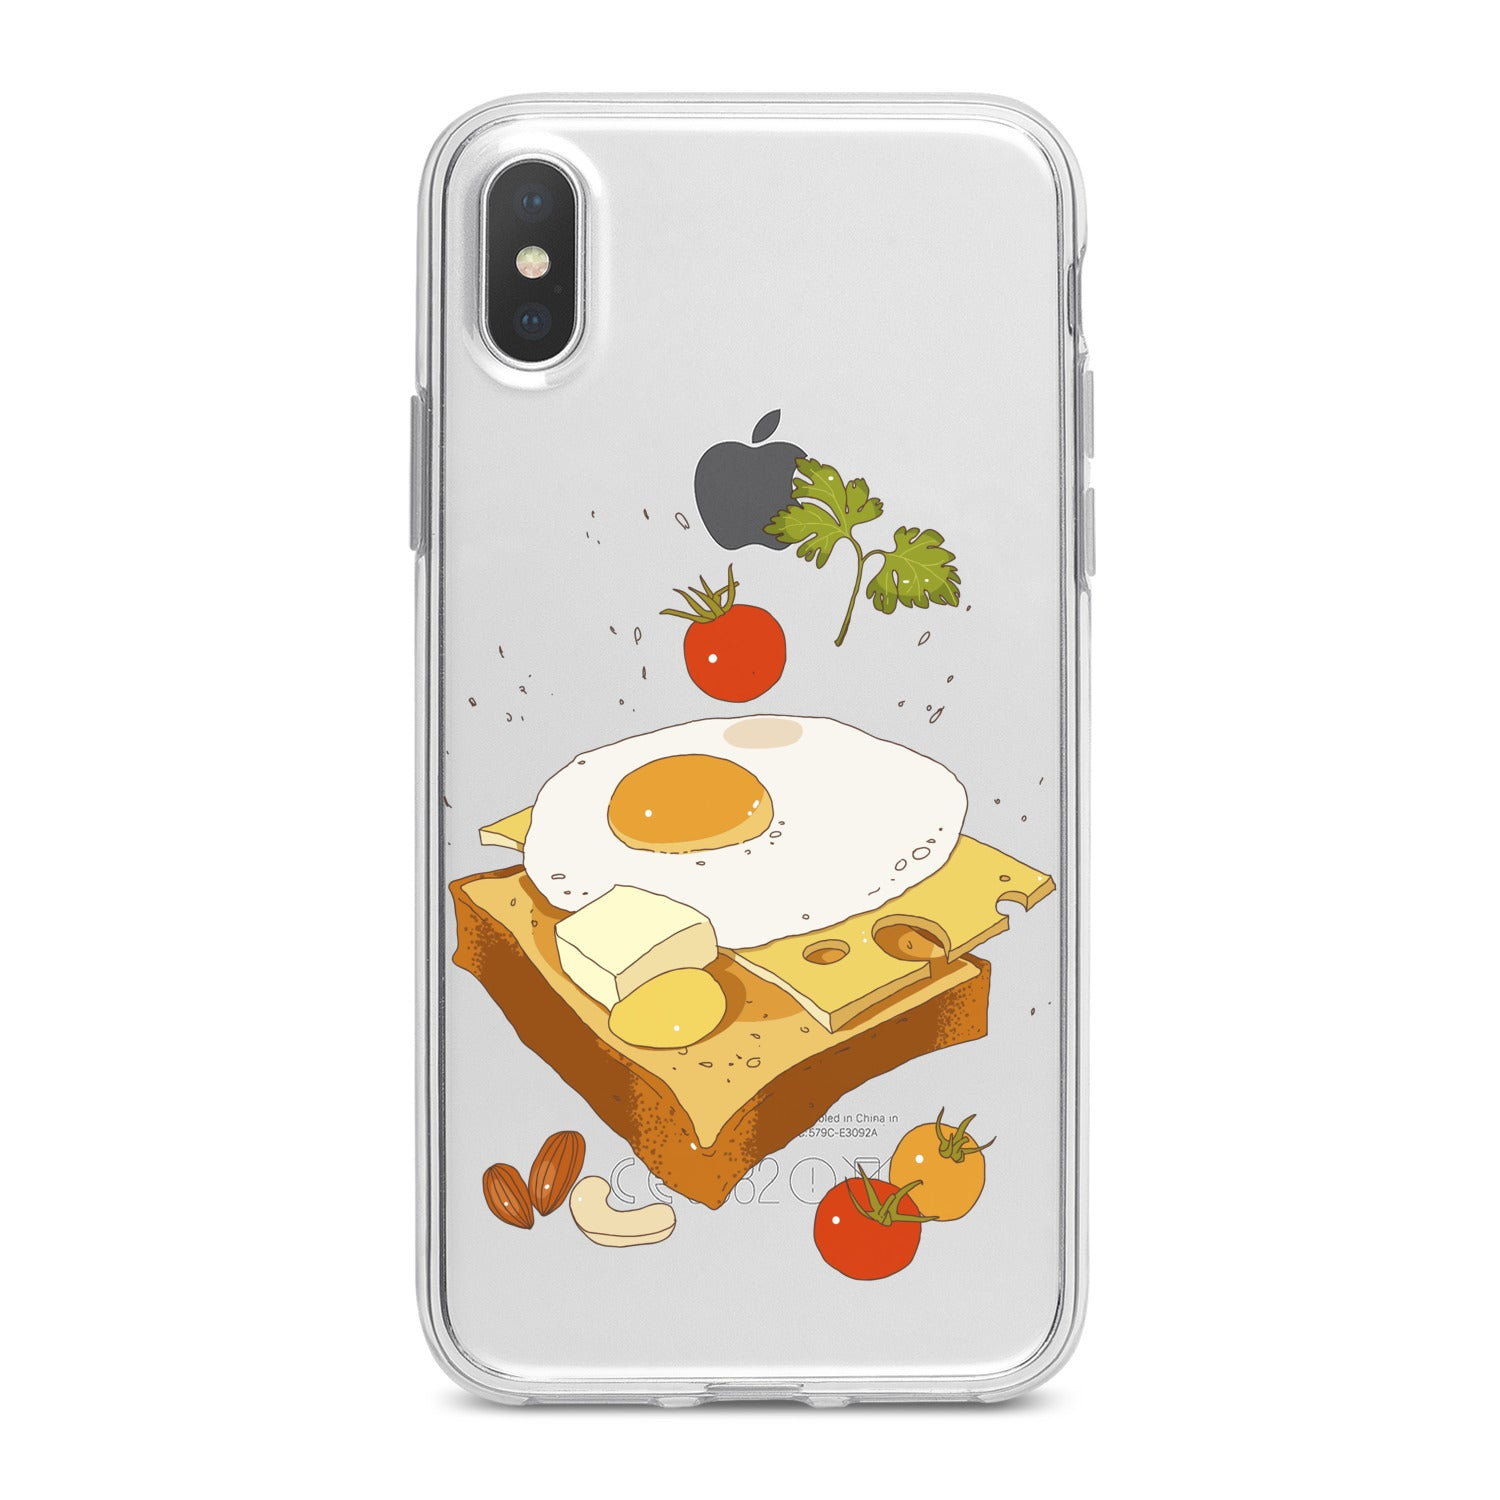 Lex Altern Tasty Sandwich Phone Case for your iPhone & Android phone.